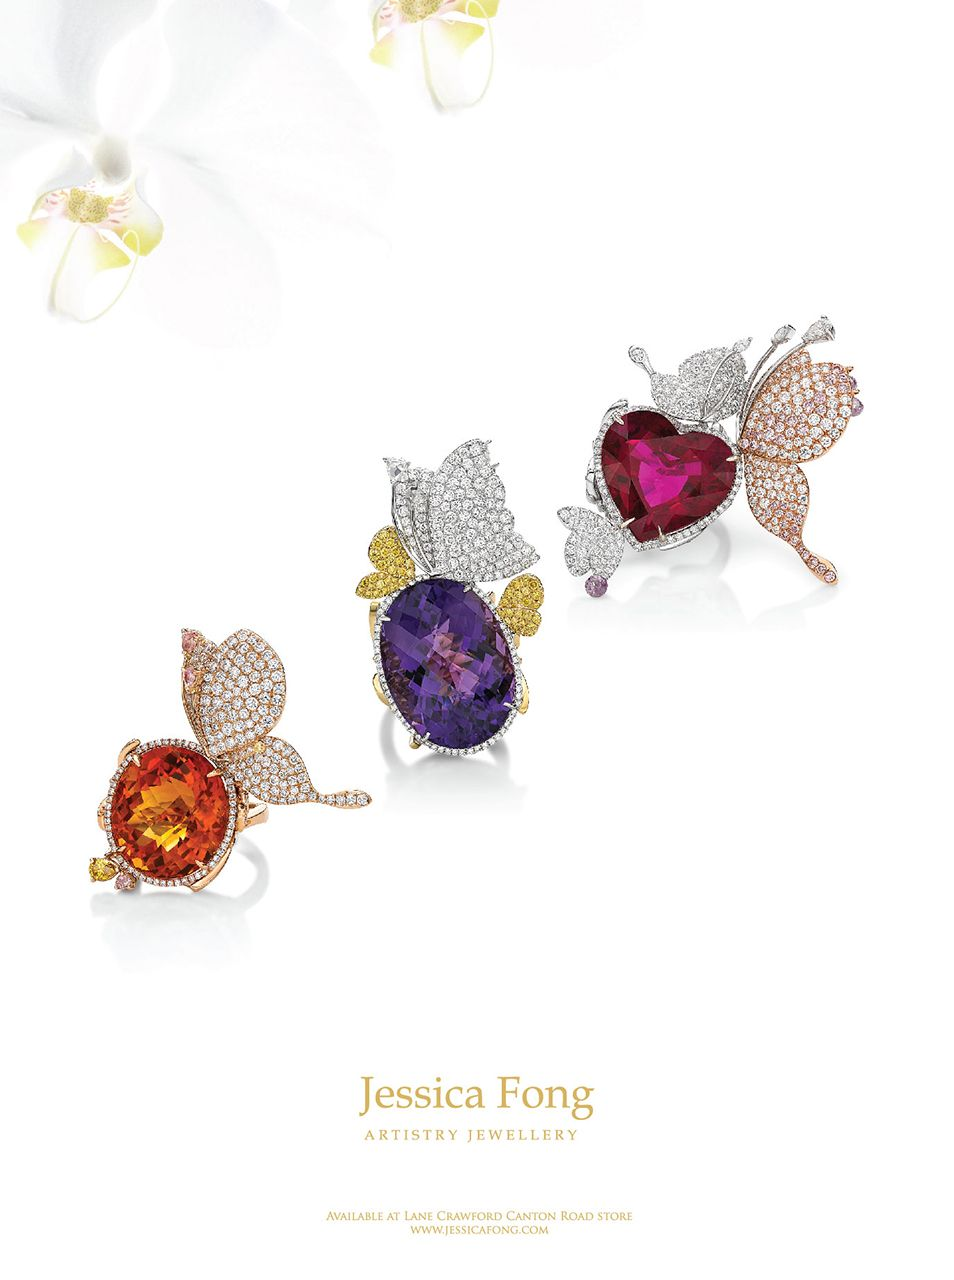 Unicorn Jewelry Design Co Ltd HKJE Magazine FallWinter 2015